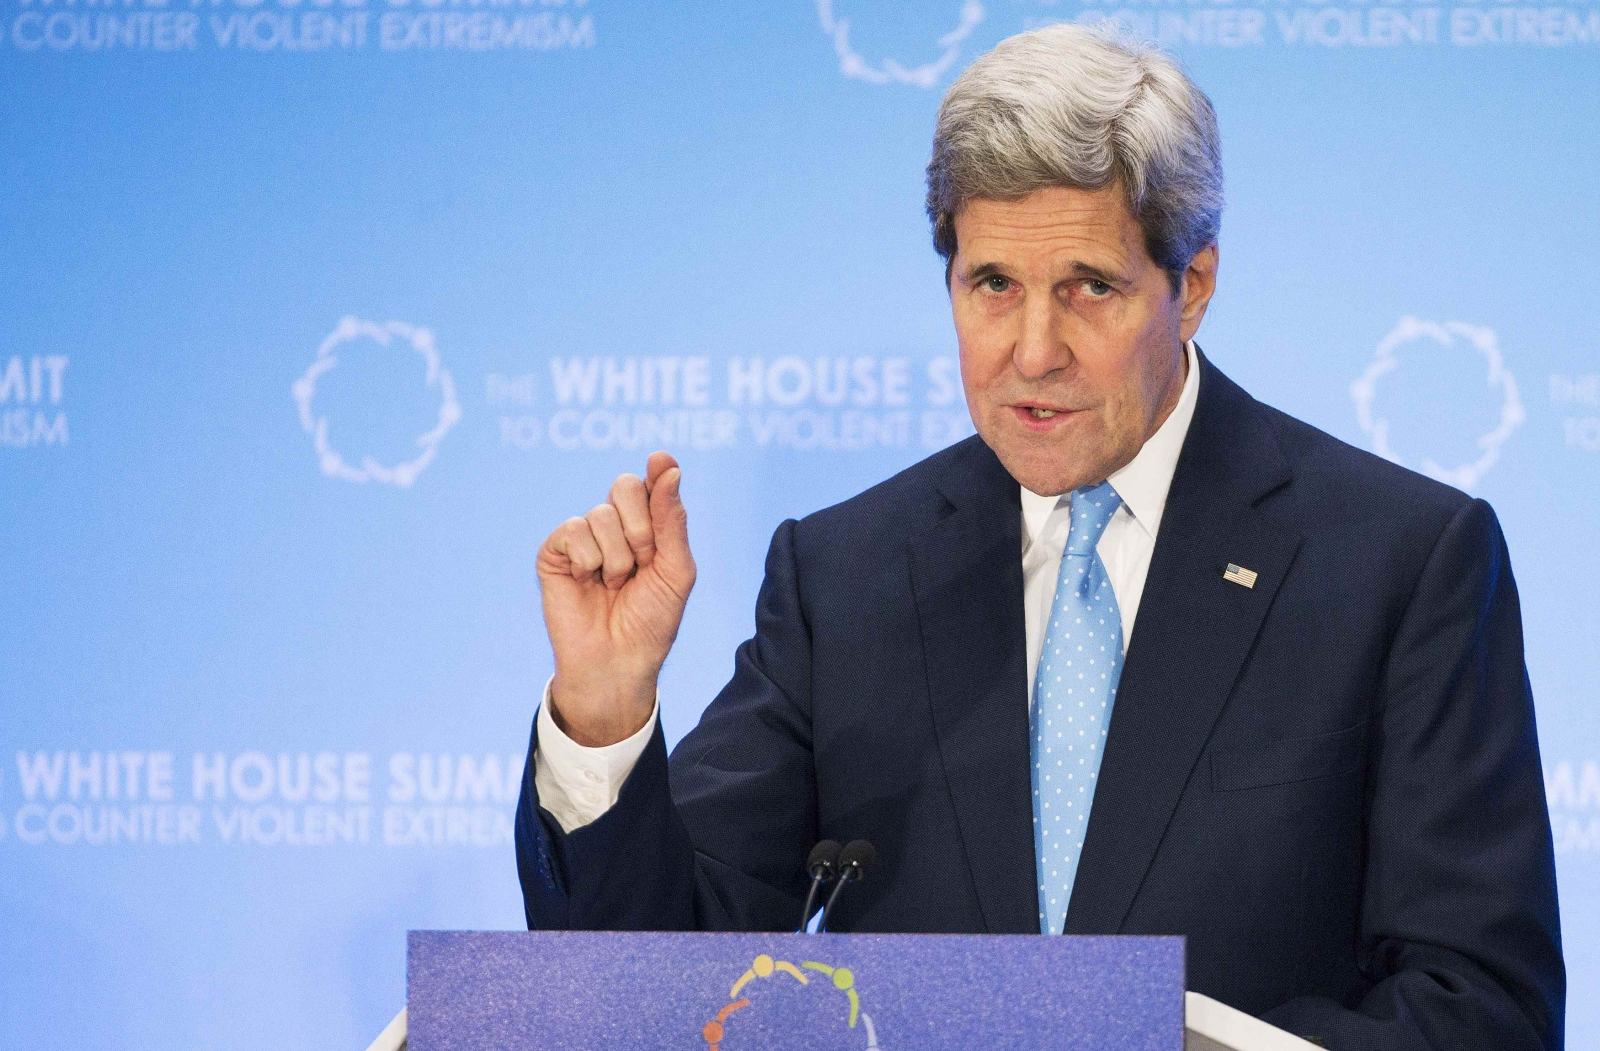 John Kerry: 'No one country' can stop violent extremism